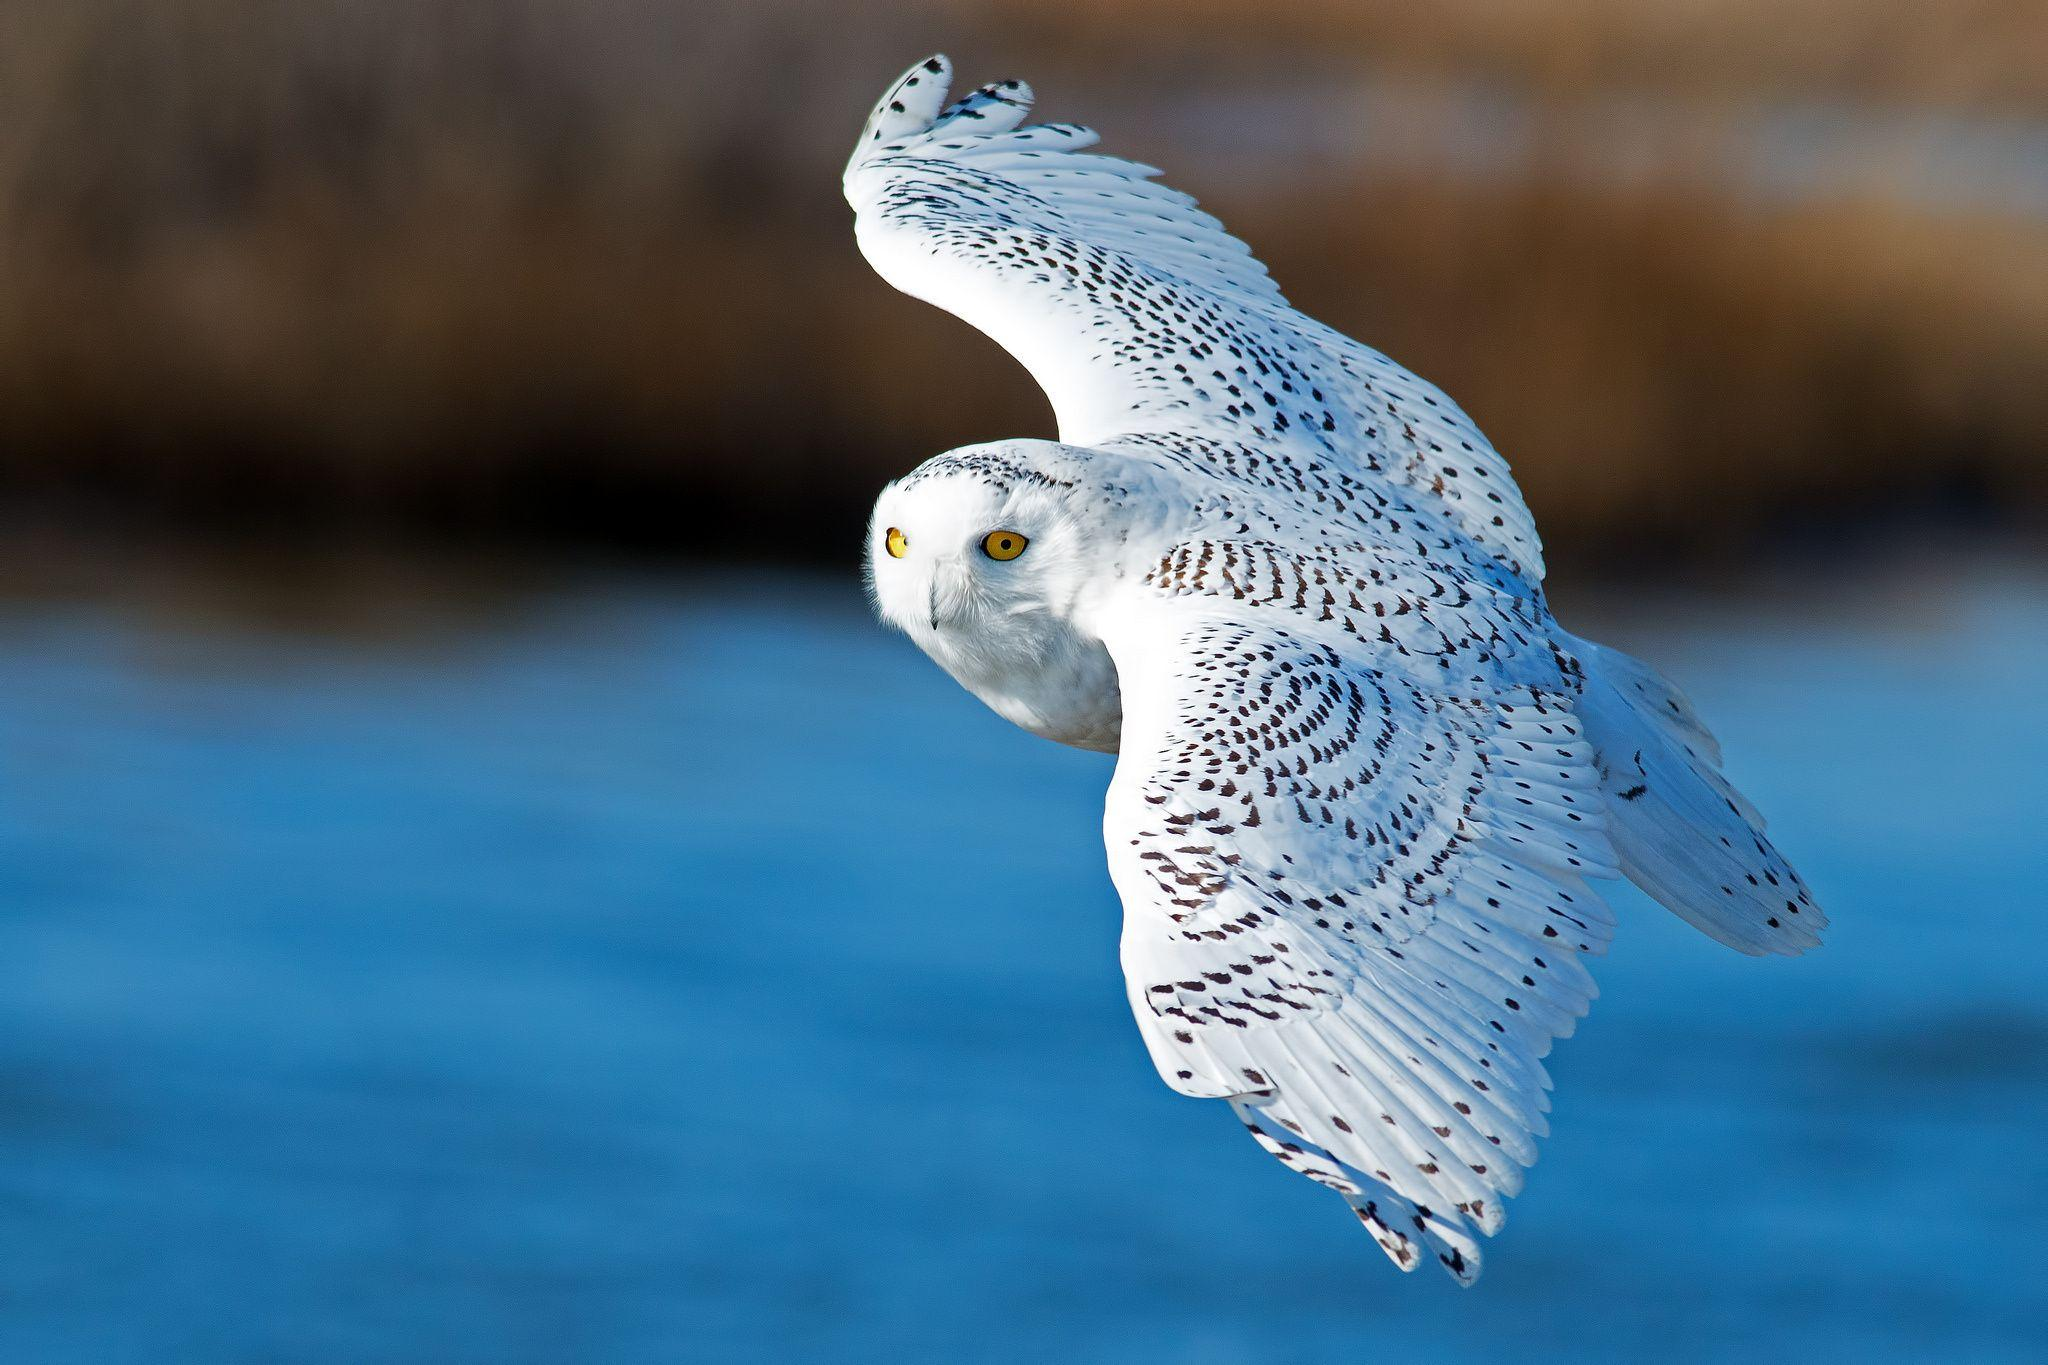 9823 wings, White owl, flying, bird, snowy owl Wallpapers download ...